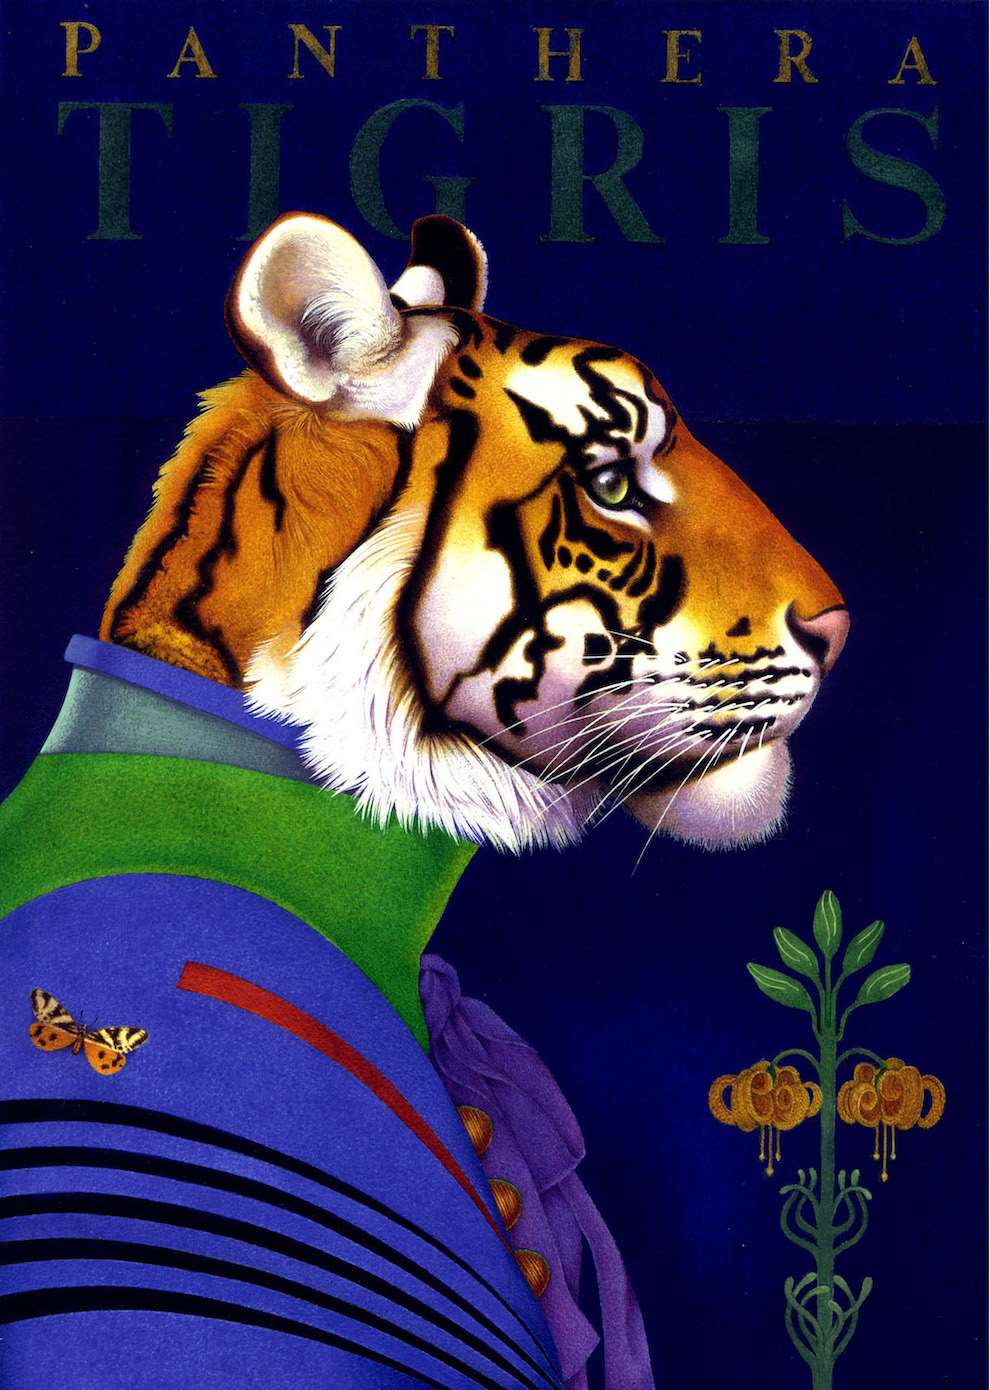 Carol Lawson, Personify handpainted portrait of a tiger